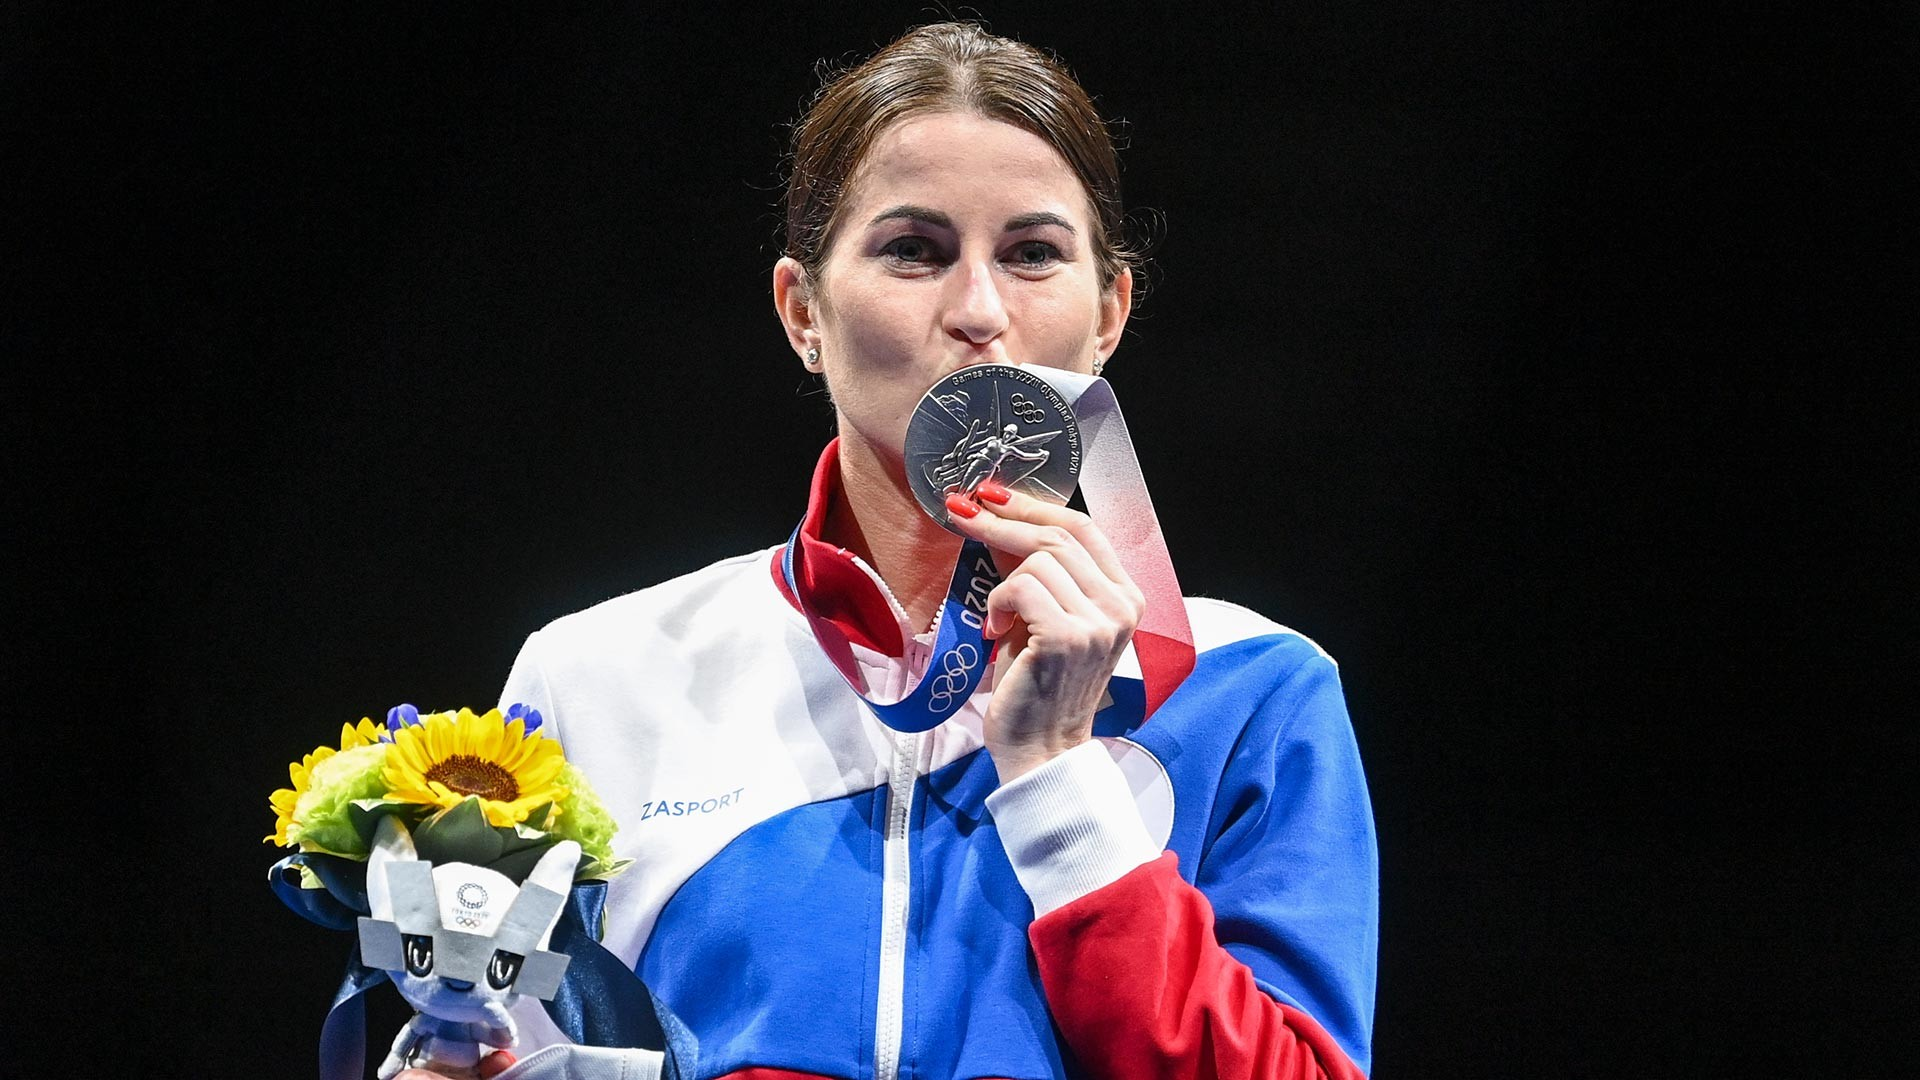 Russian athlete Inna Deriglazova, a member of the Russian national team (ROC team), who won the silver medal in the women's foil fencing competition at the XXXII Summer Olympics in Tokyo